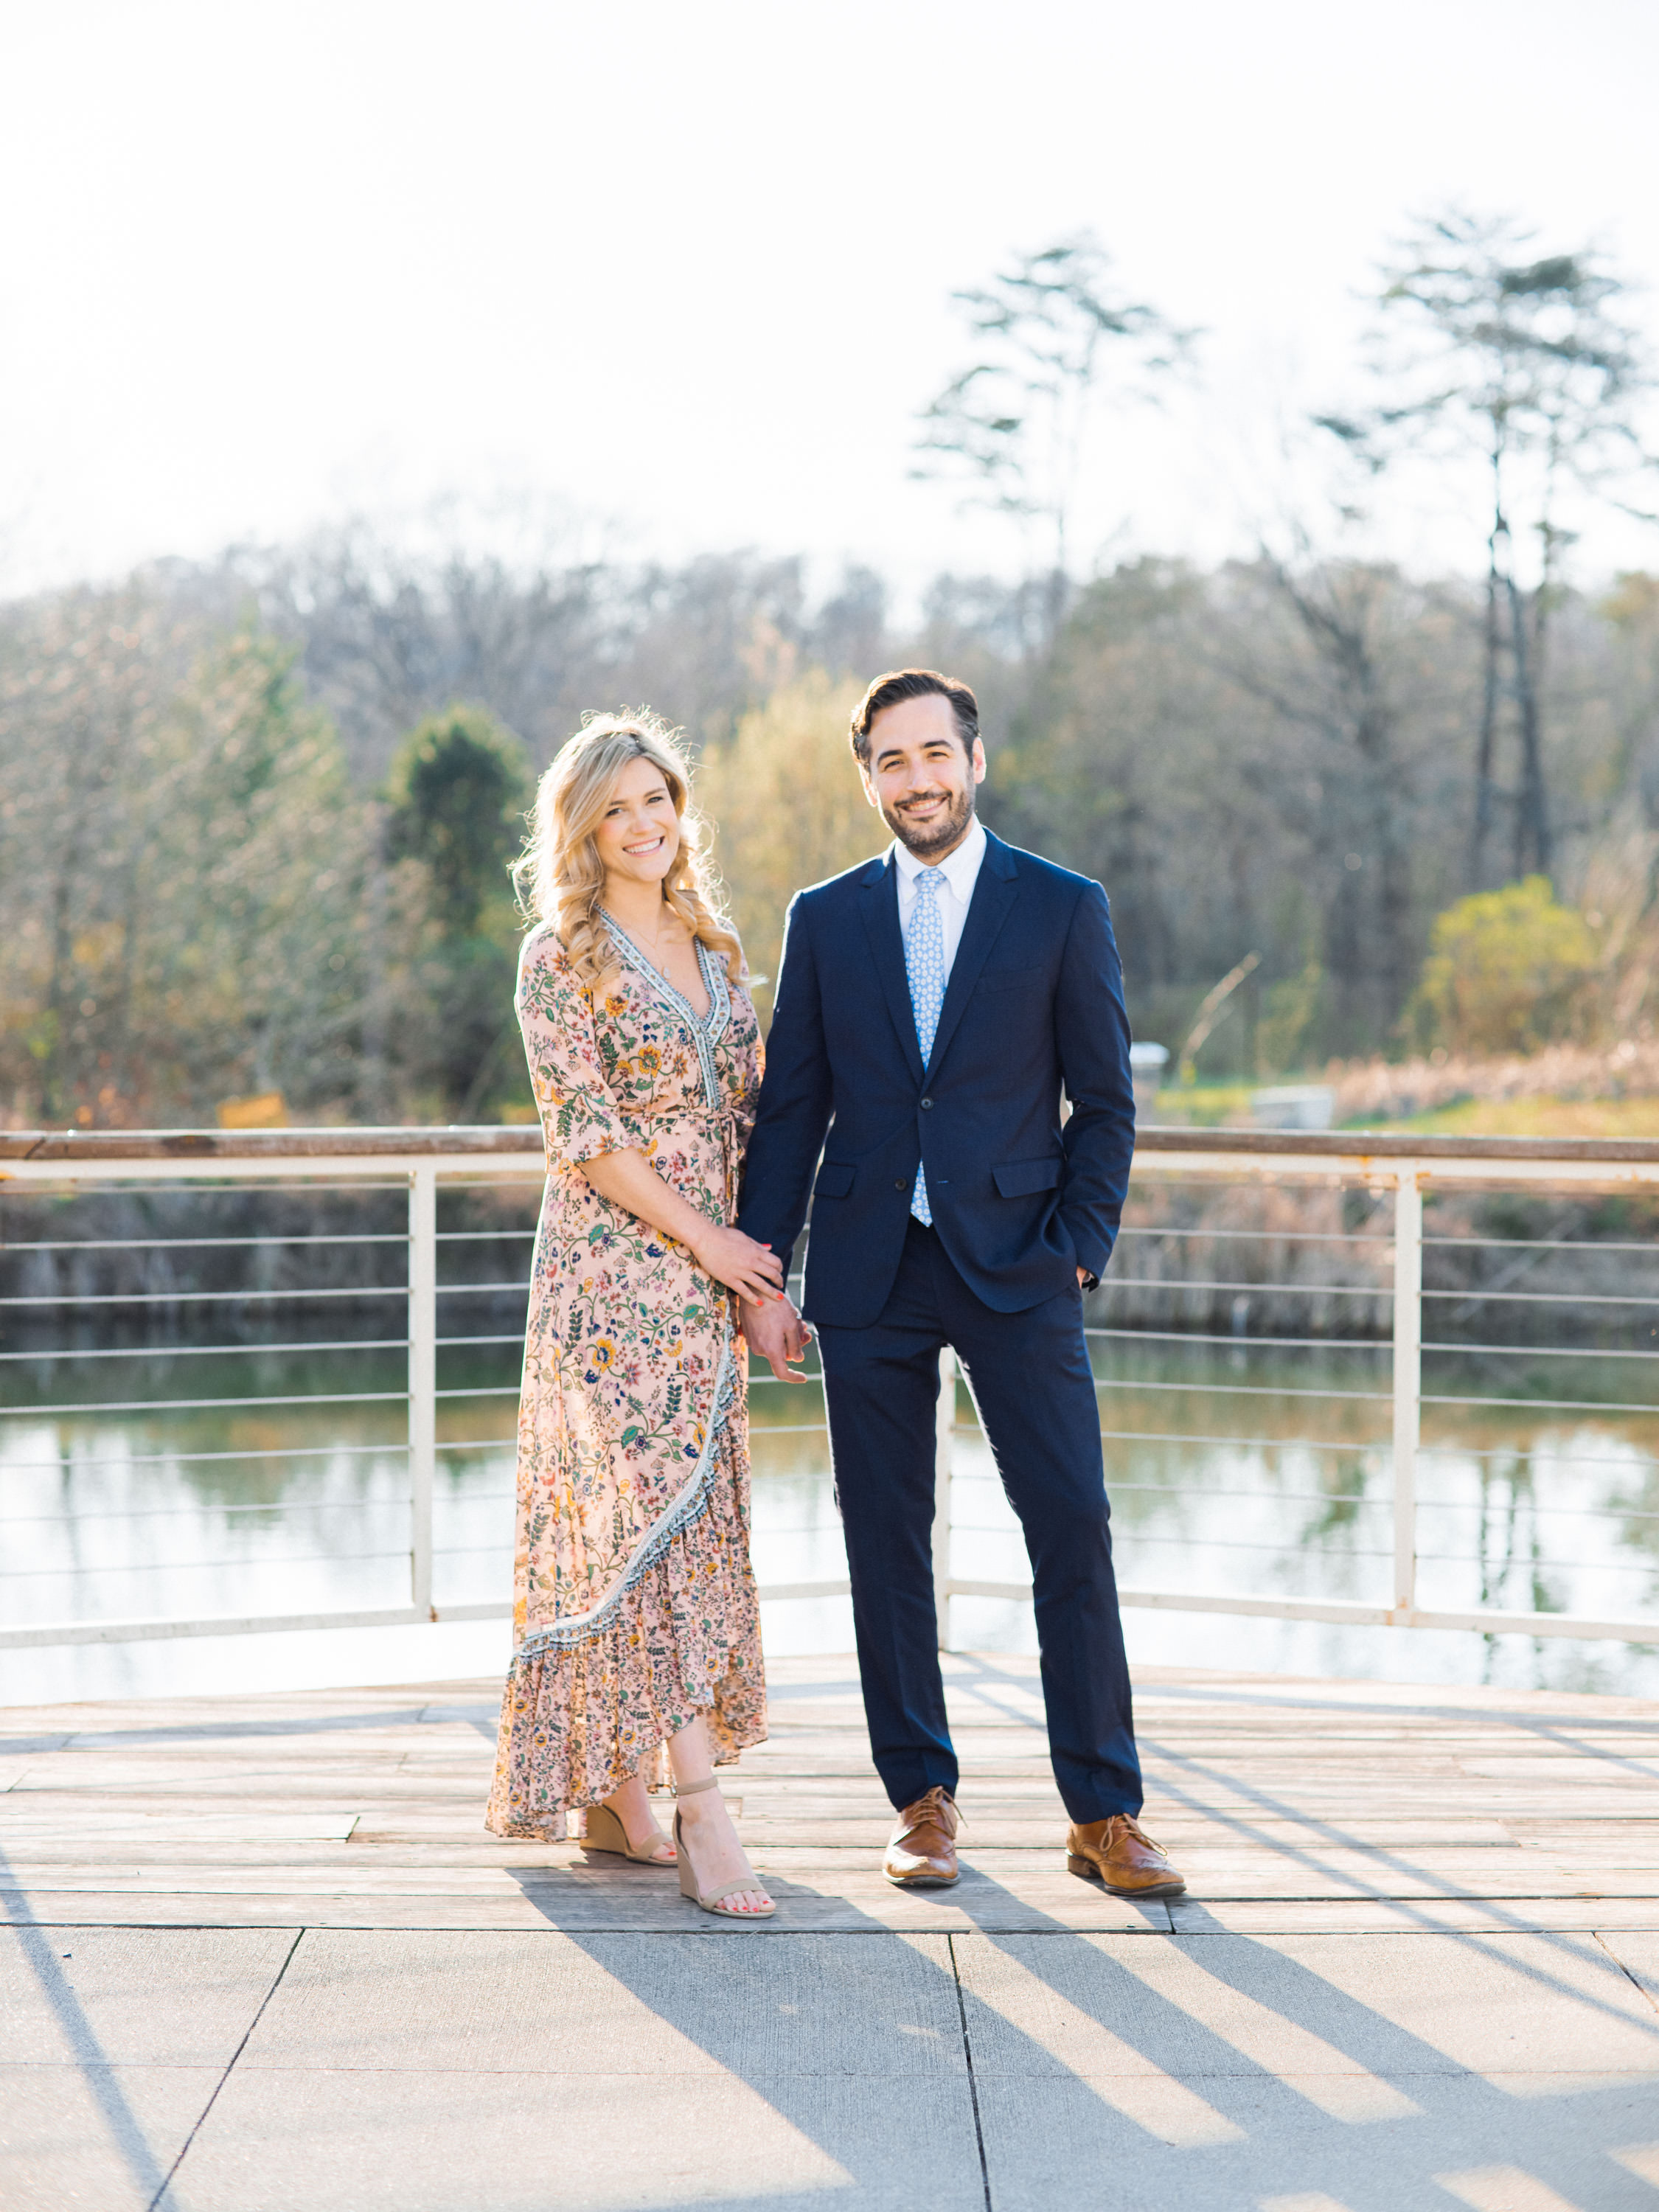 Benny & Sarah Engagement Session at Bernheim Arboretum (Web Use Only)-2.jpg